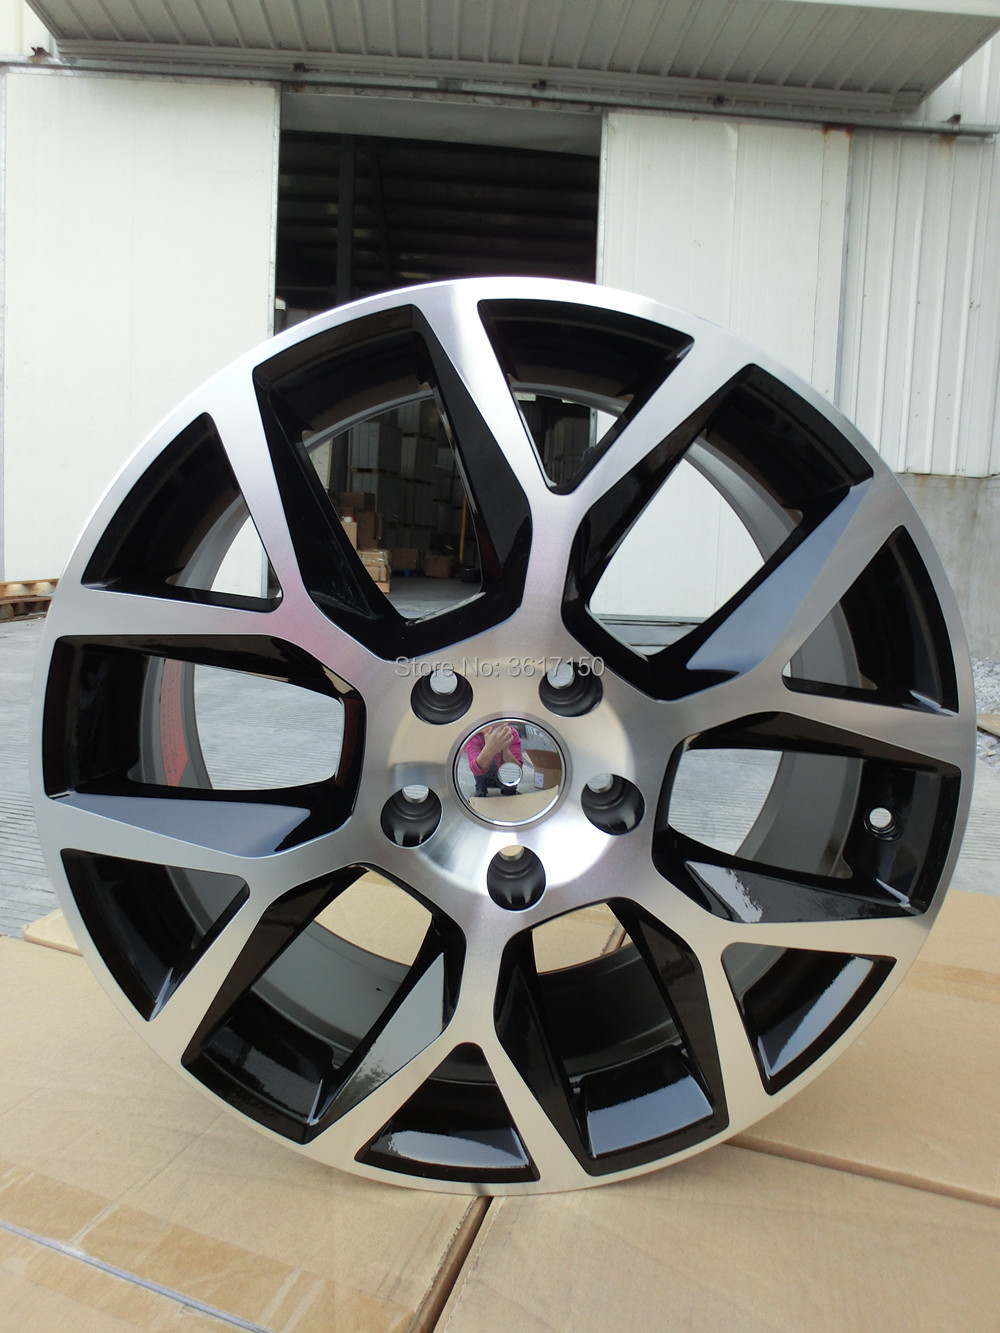 17x7.5J Wheel Rims Of The PCD 5x112 Center Broe 57.1 ET45 With The Hub Caps цены